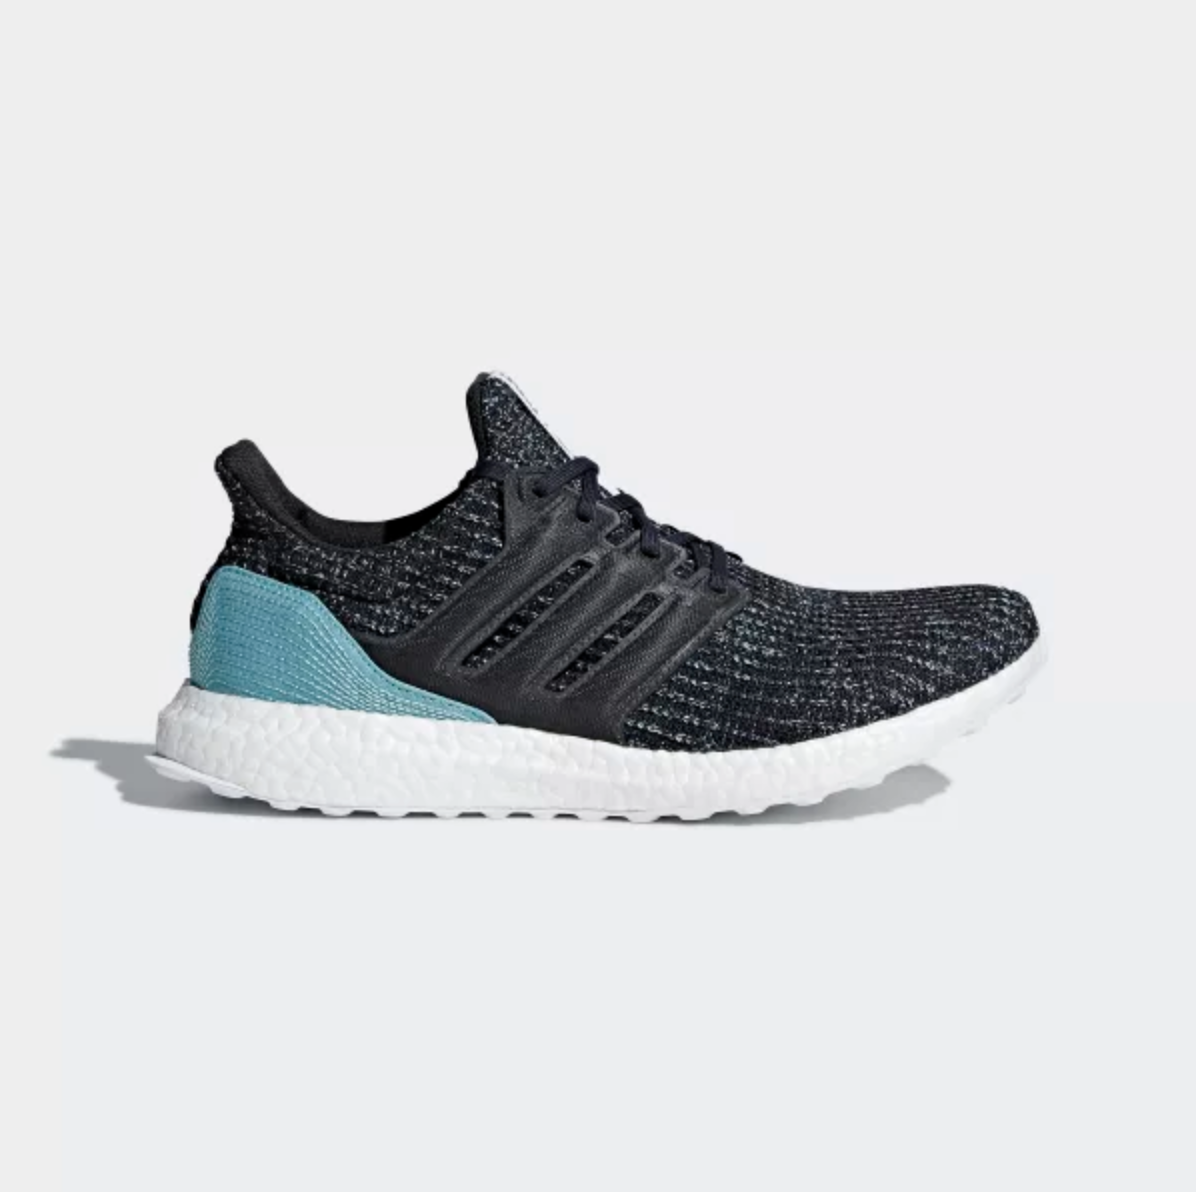 Adidas Ultraboost Parley Shoes